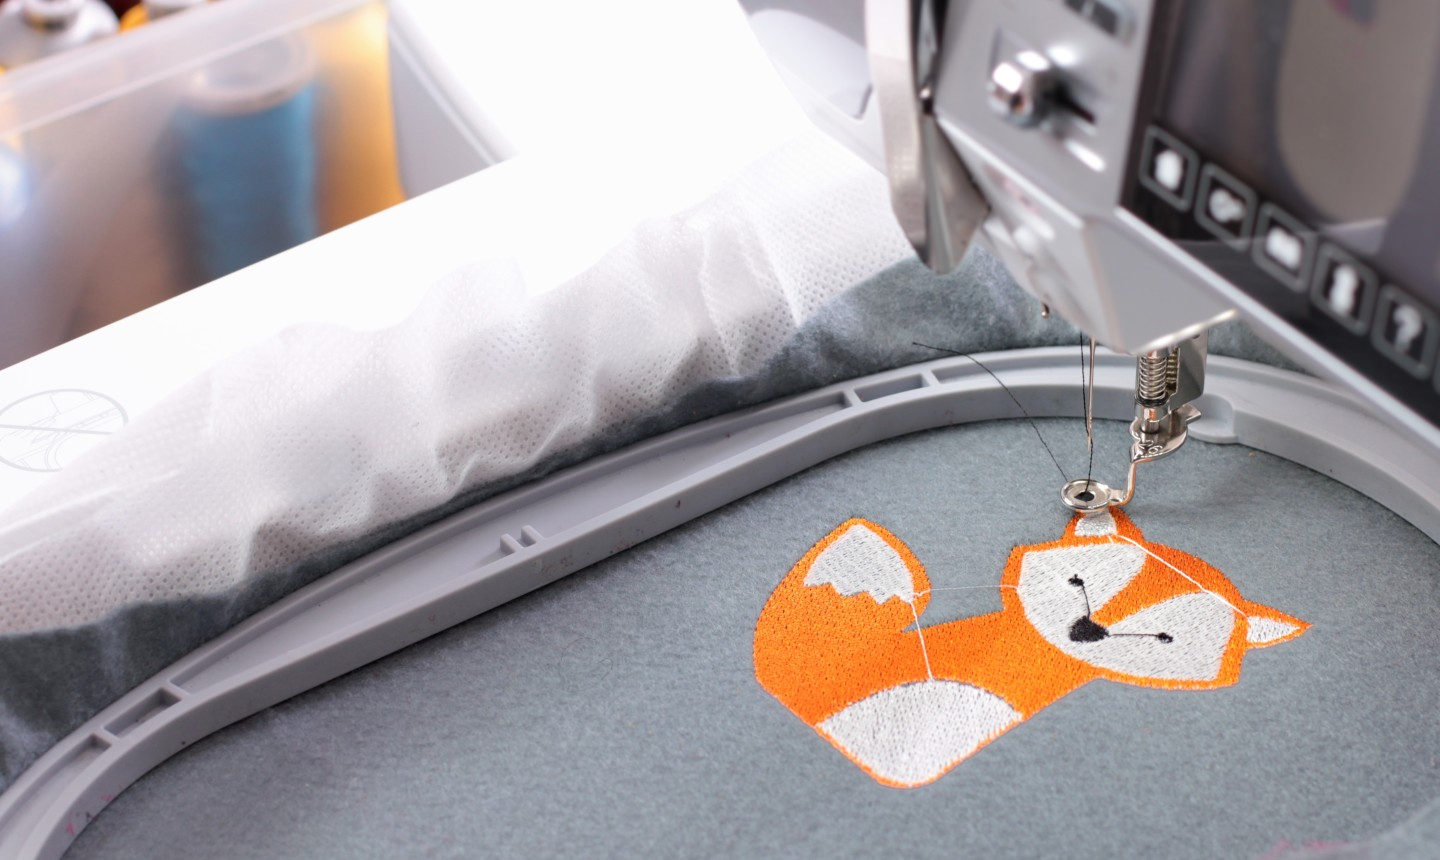 How To Design Embroidery Patterns For Machine How To Choose Machine Embroidery Thread